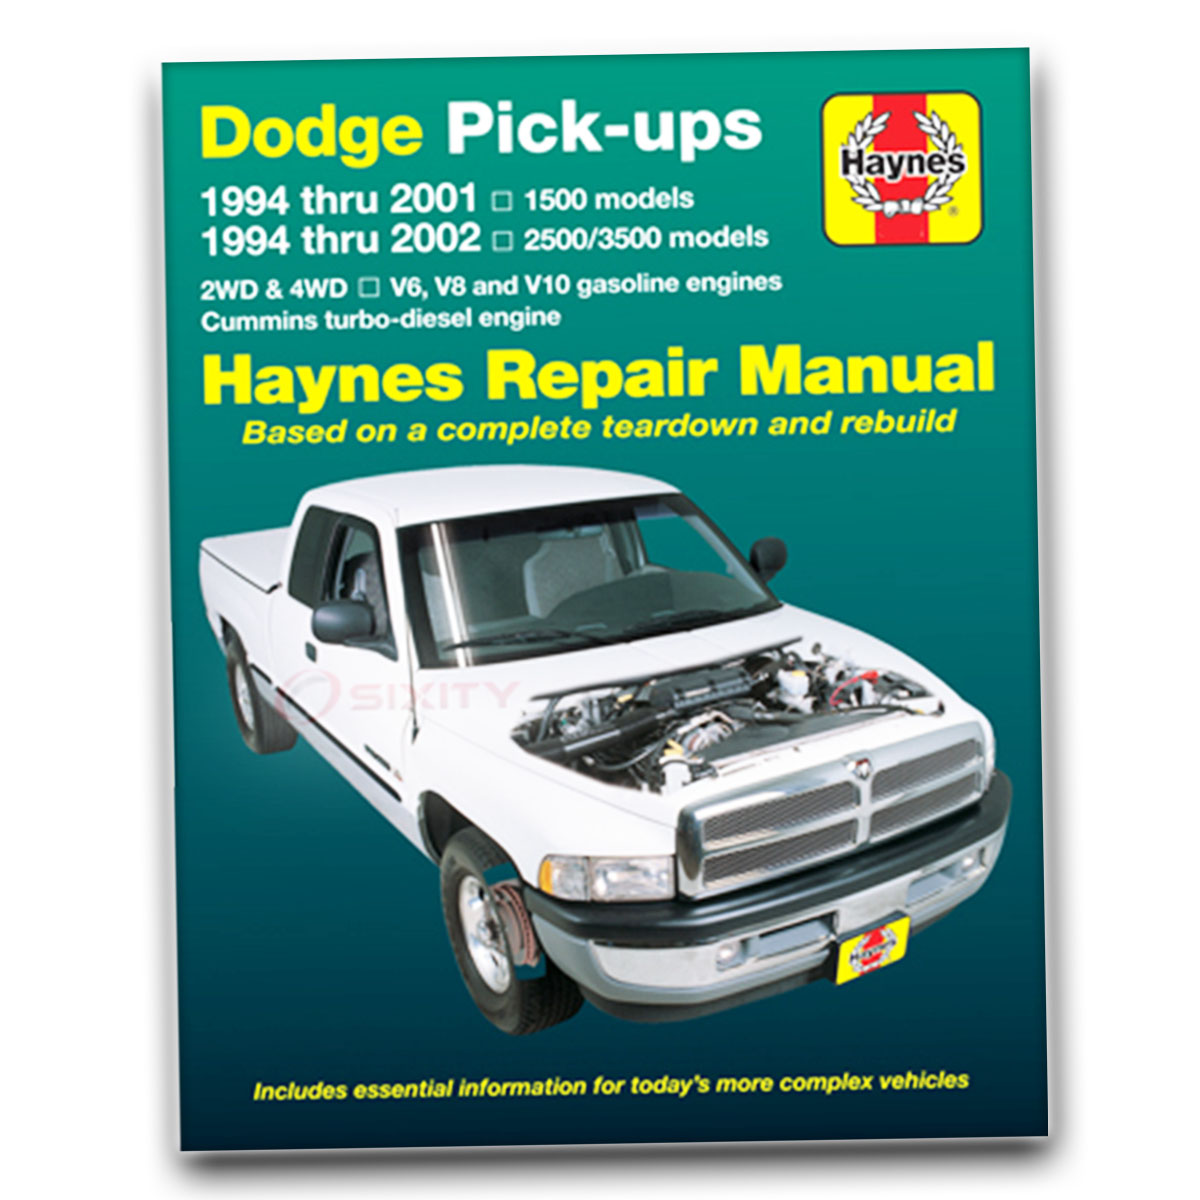 Haynes Repair Manual for Dodge Ram 3500 Base Shop Service Garage Book wa